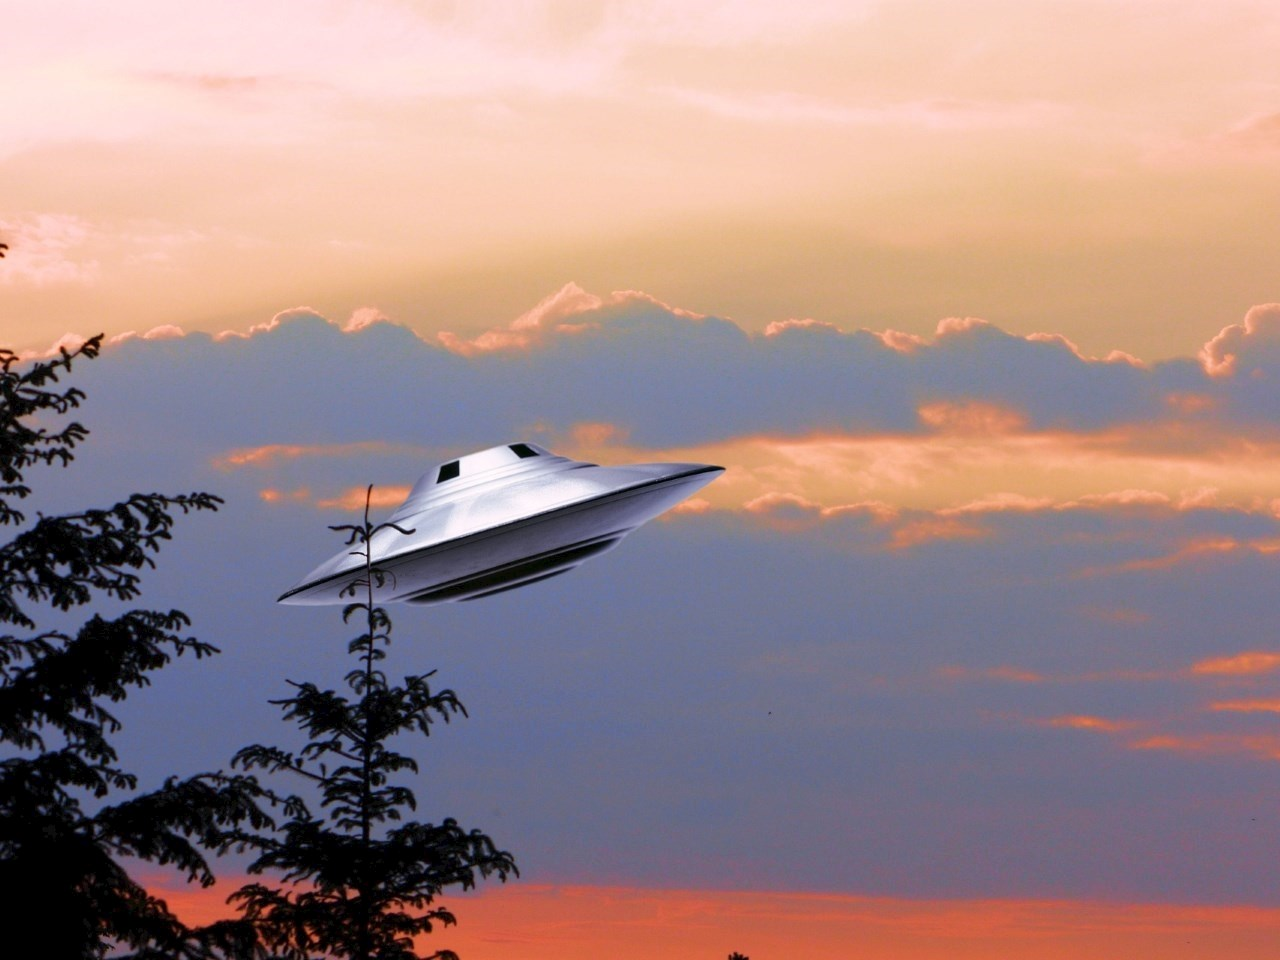 The CIA just posted some tips and guidance for UFO photographers